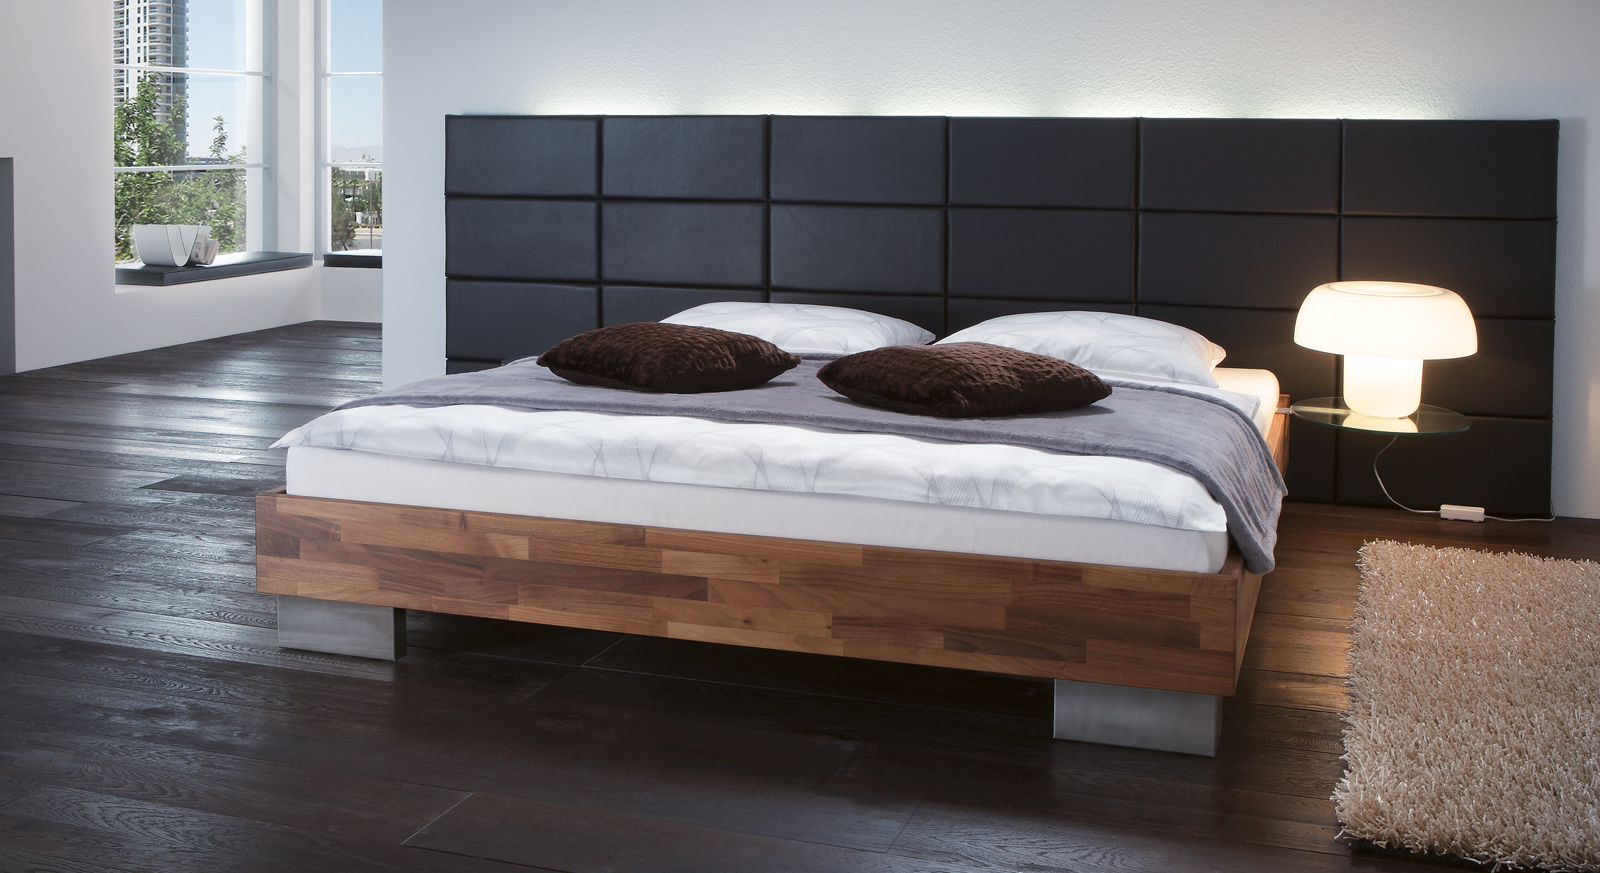 tiefes massivholzbett rio aus nussbaum in 160x200cm. Black Bedroom Furniture Sets. Home Design Ideas